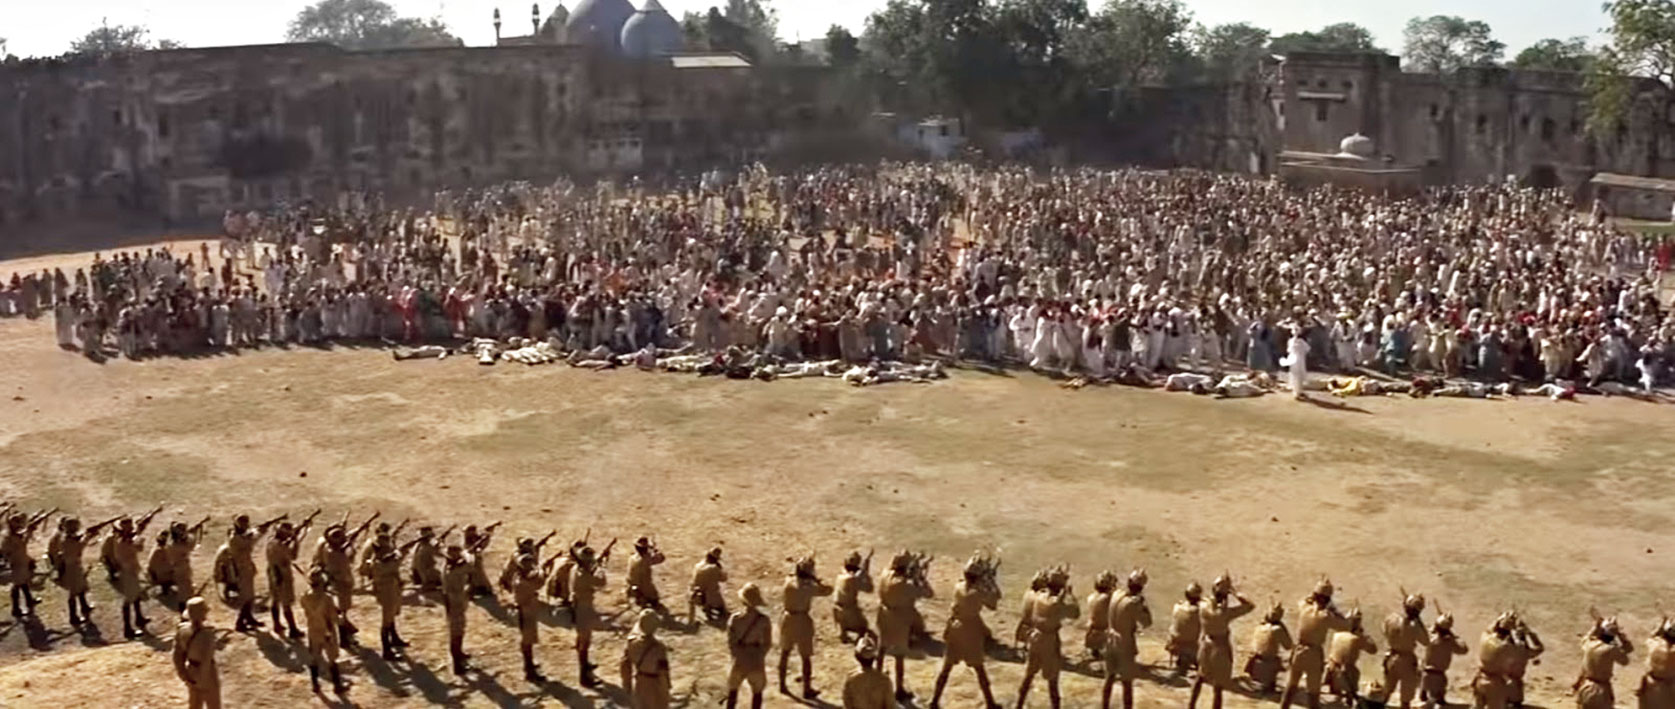 A still from the film, Gandhi (1982), depicting the Jallianwala Bagh massacre